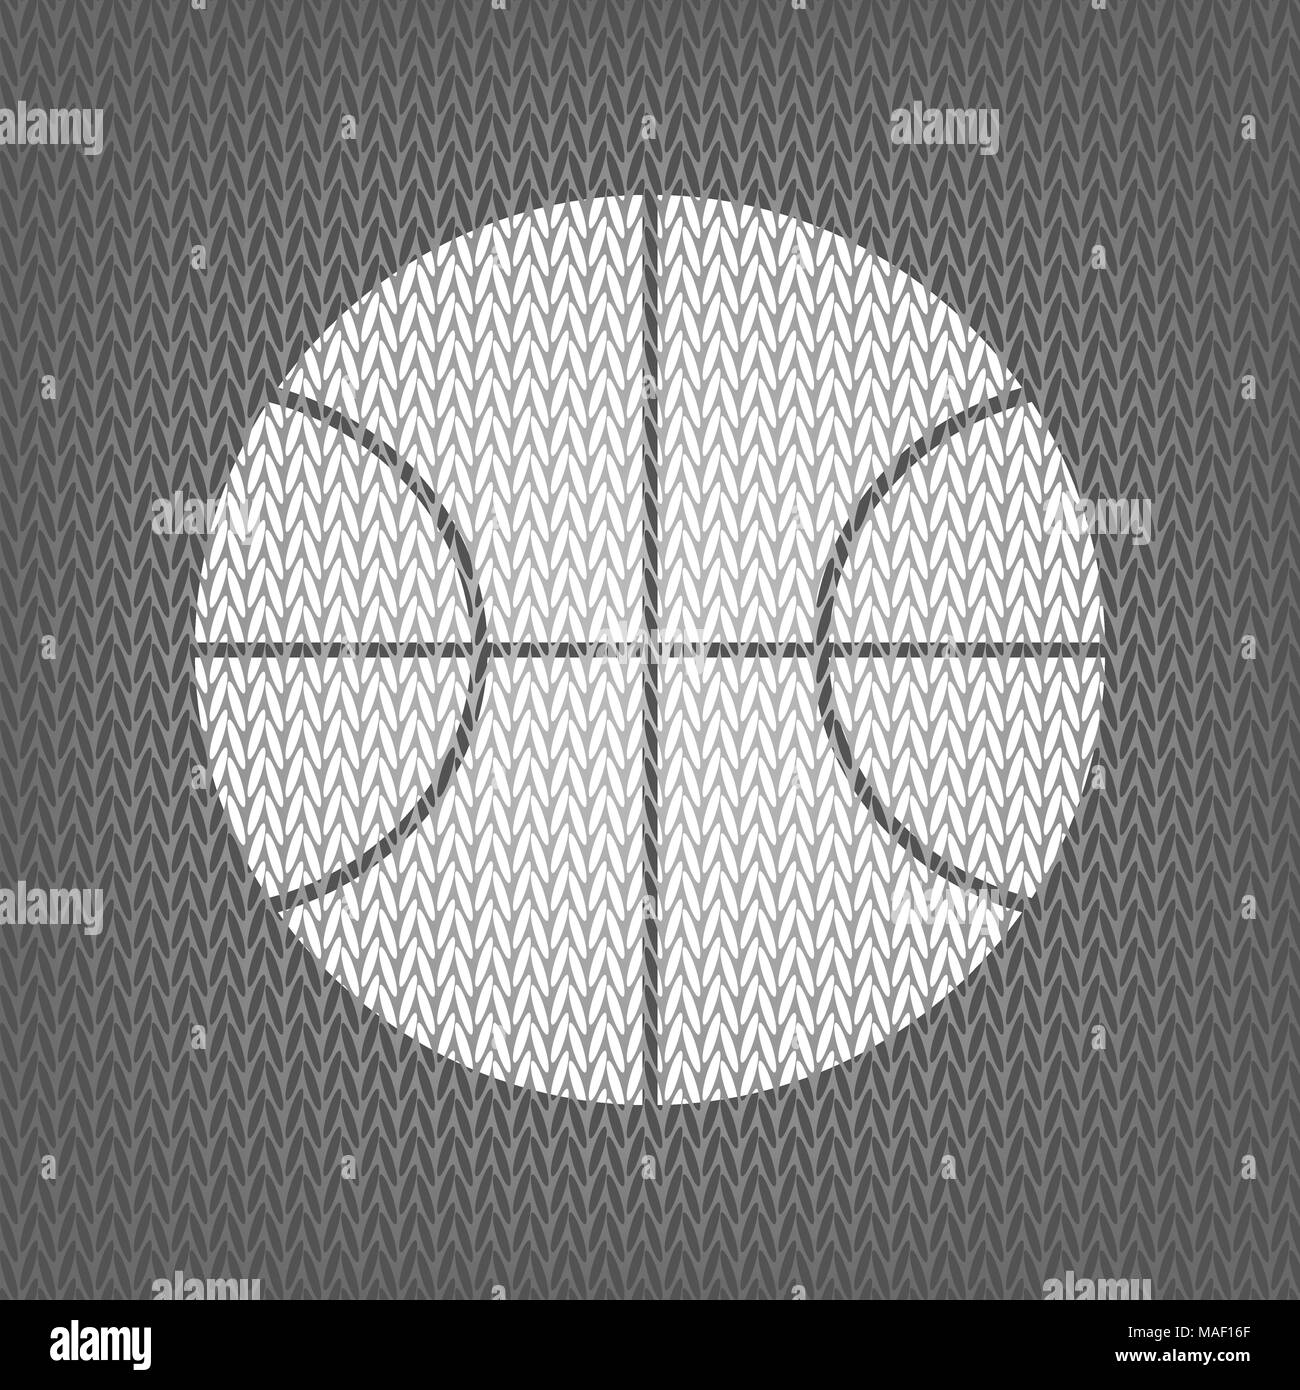 Basketball ball sign illustration. Vector. White knitted icon on gray knitted background. Isolated. - Stock Image